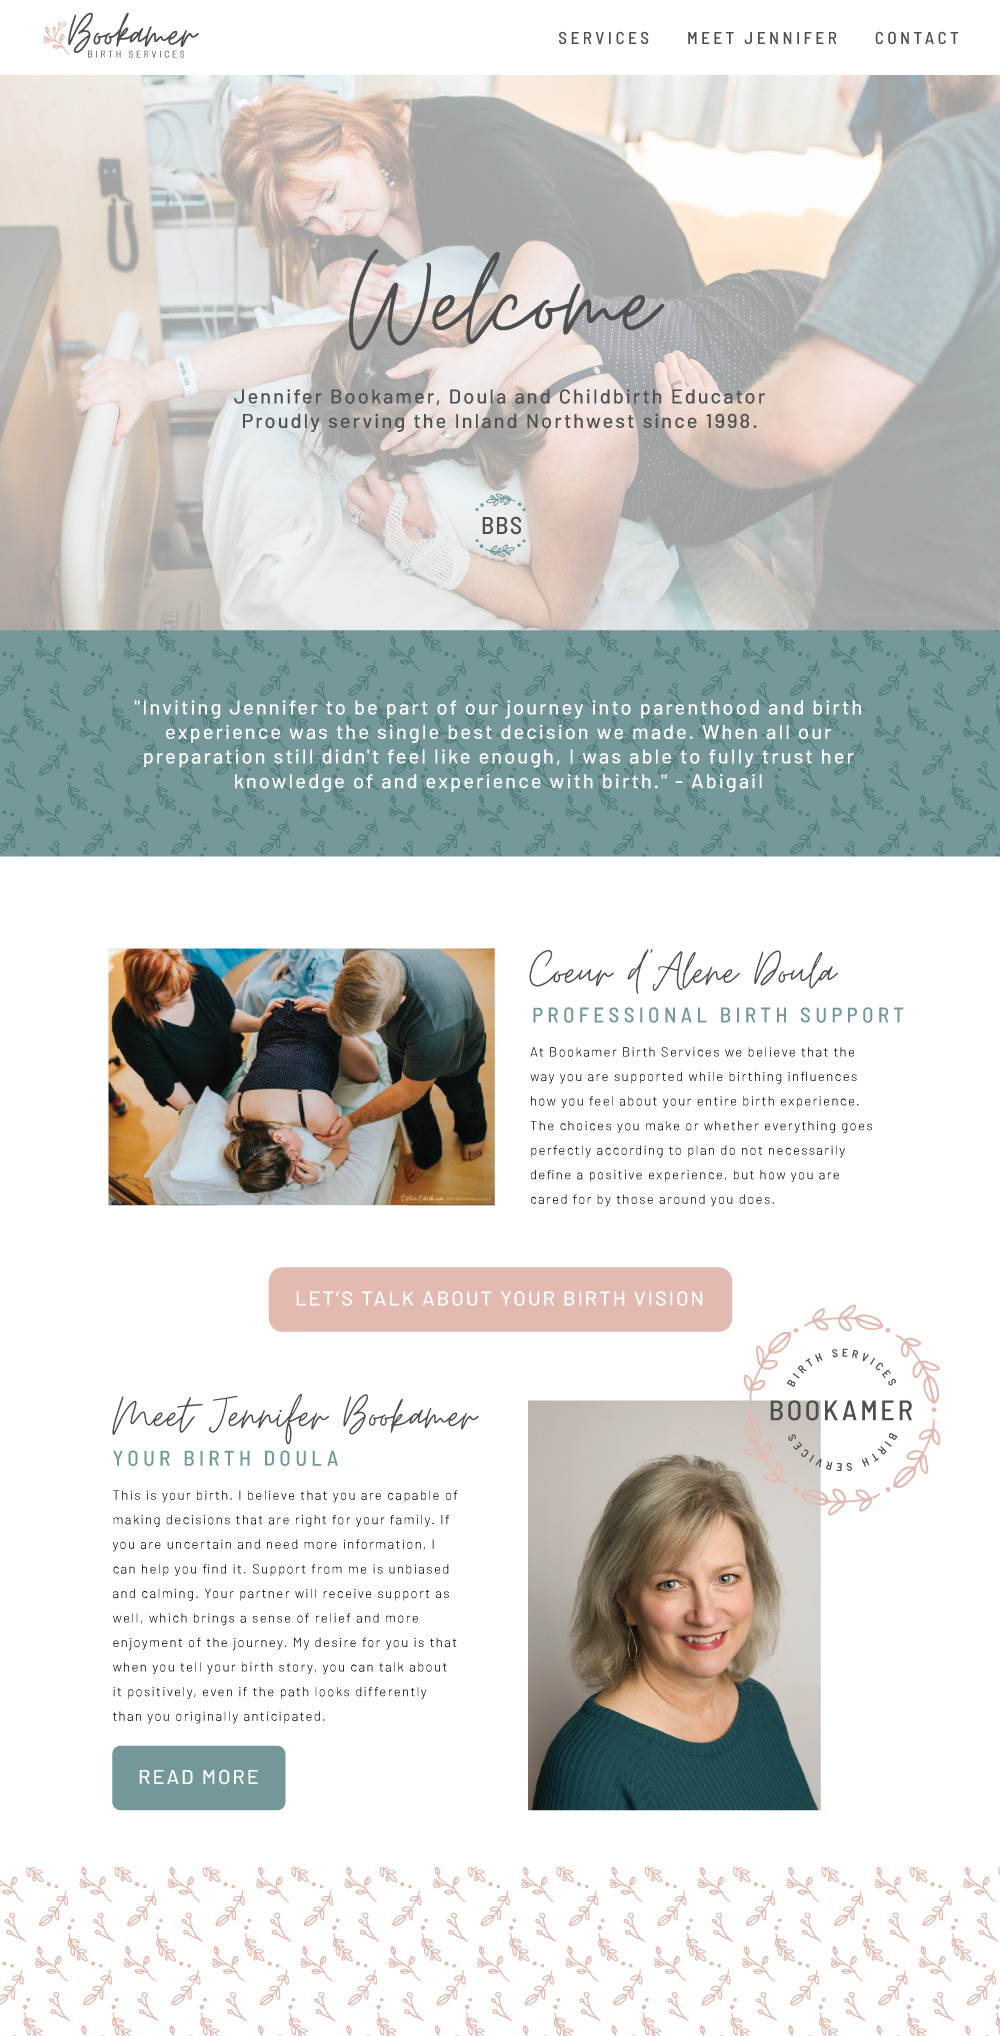 doula website design, website design for doulas